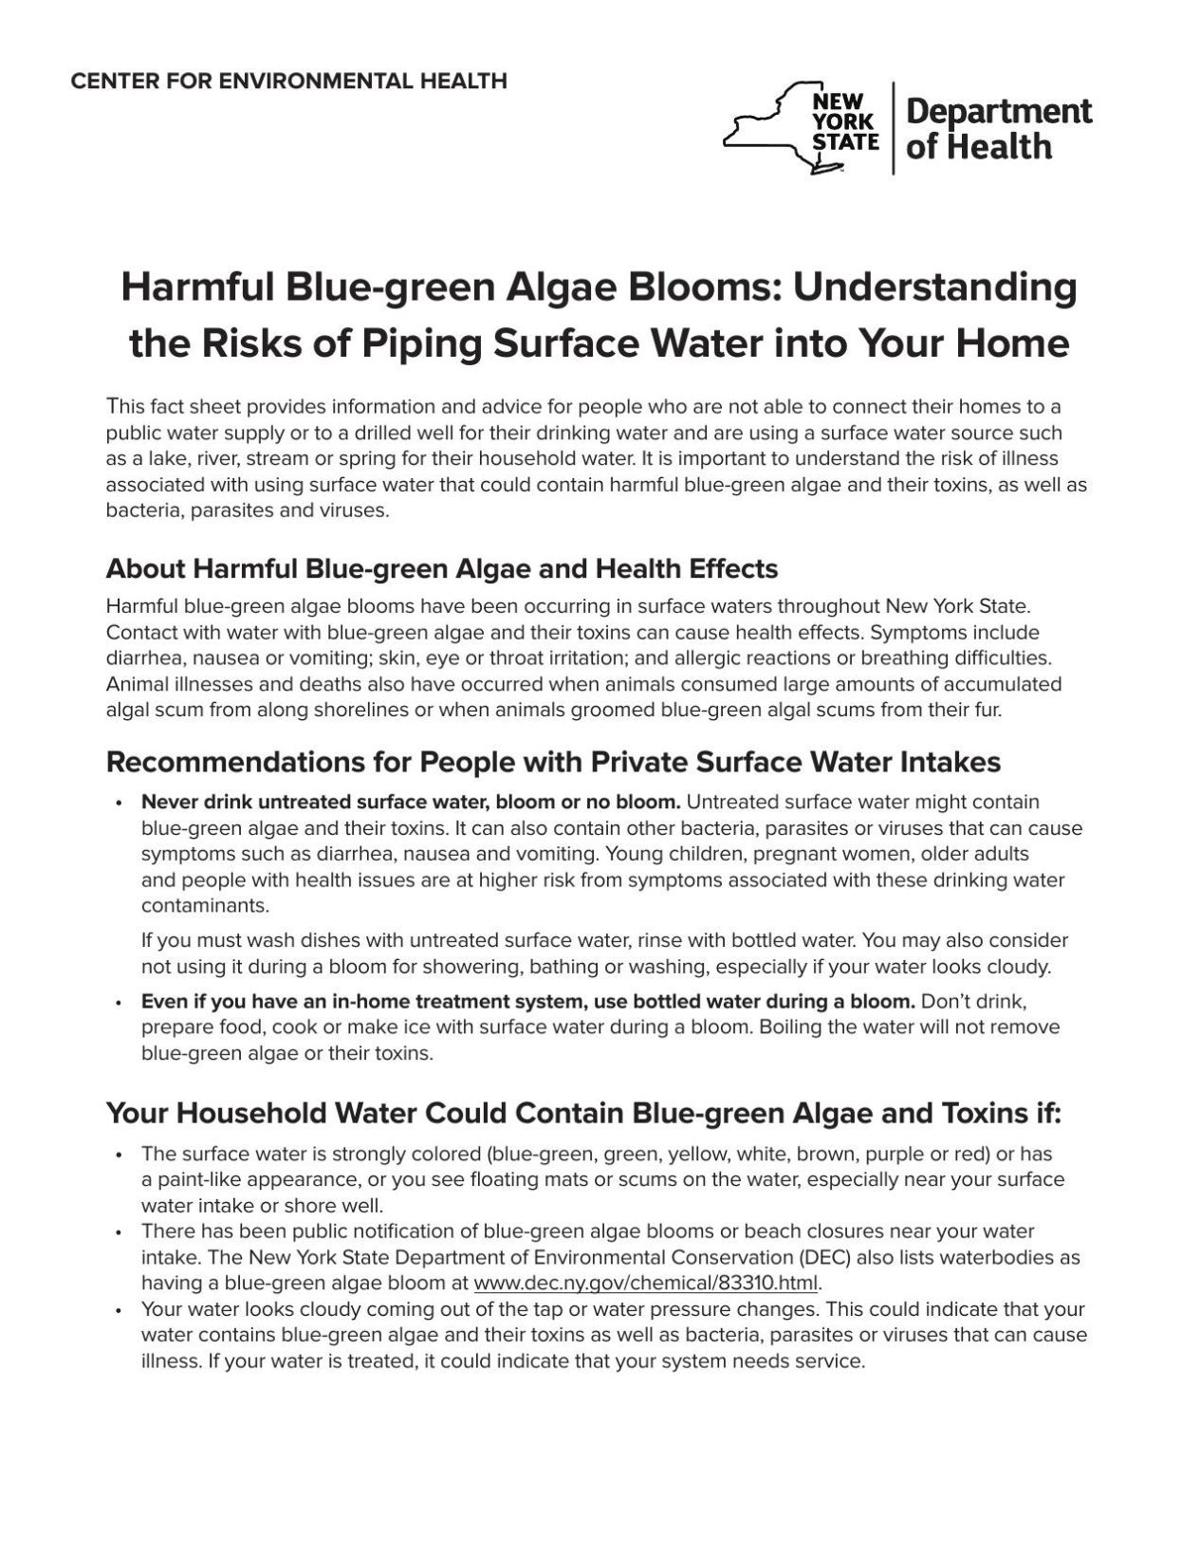 Harmful Blue-green Algae Blooms: Understanding the Risks of Piping Surface Water into Your Home